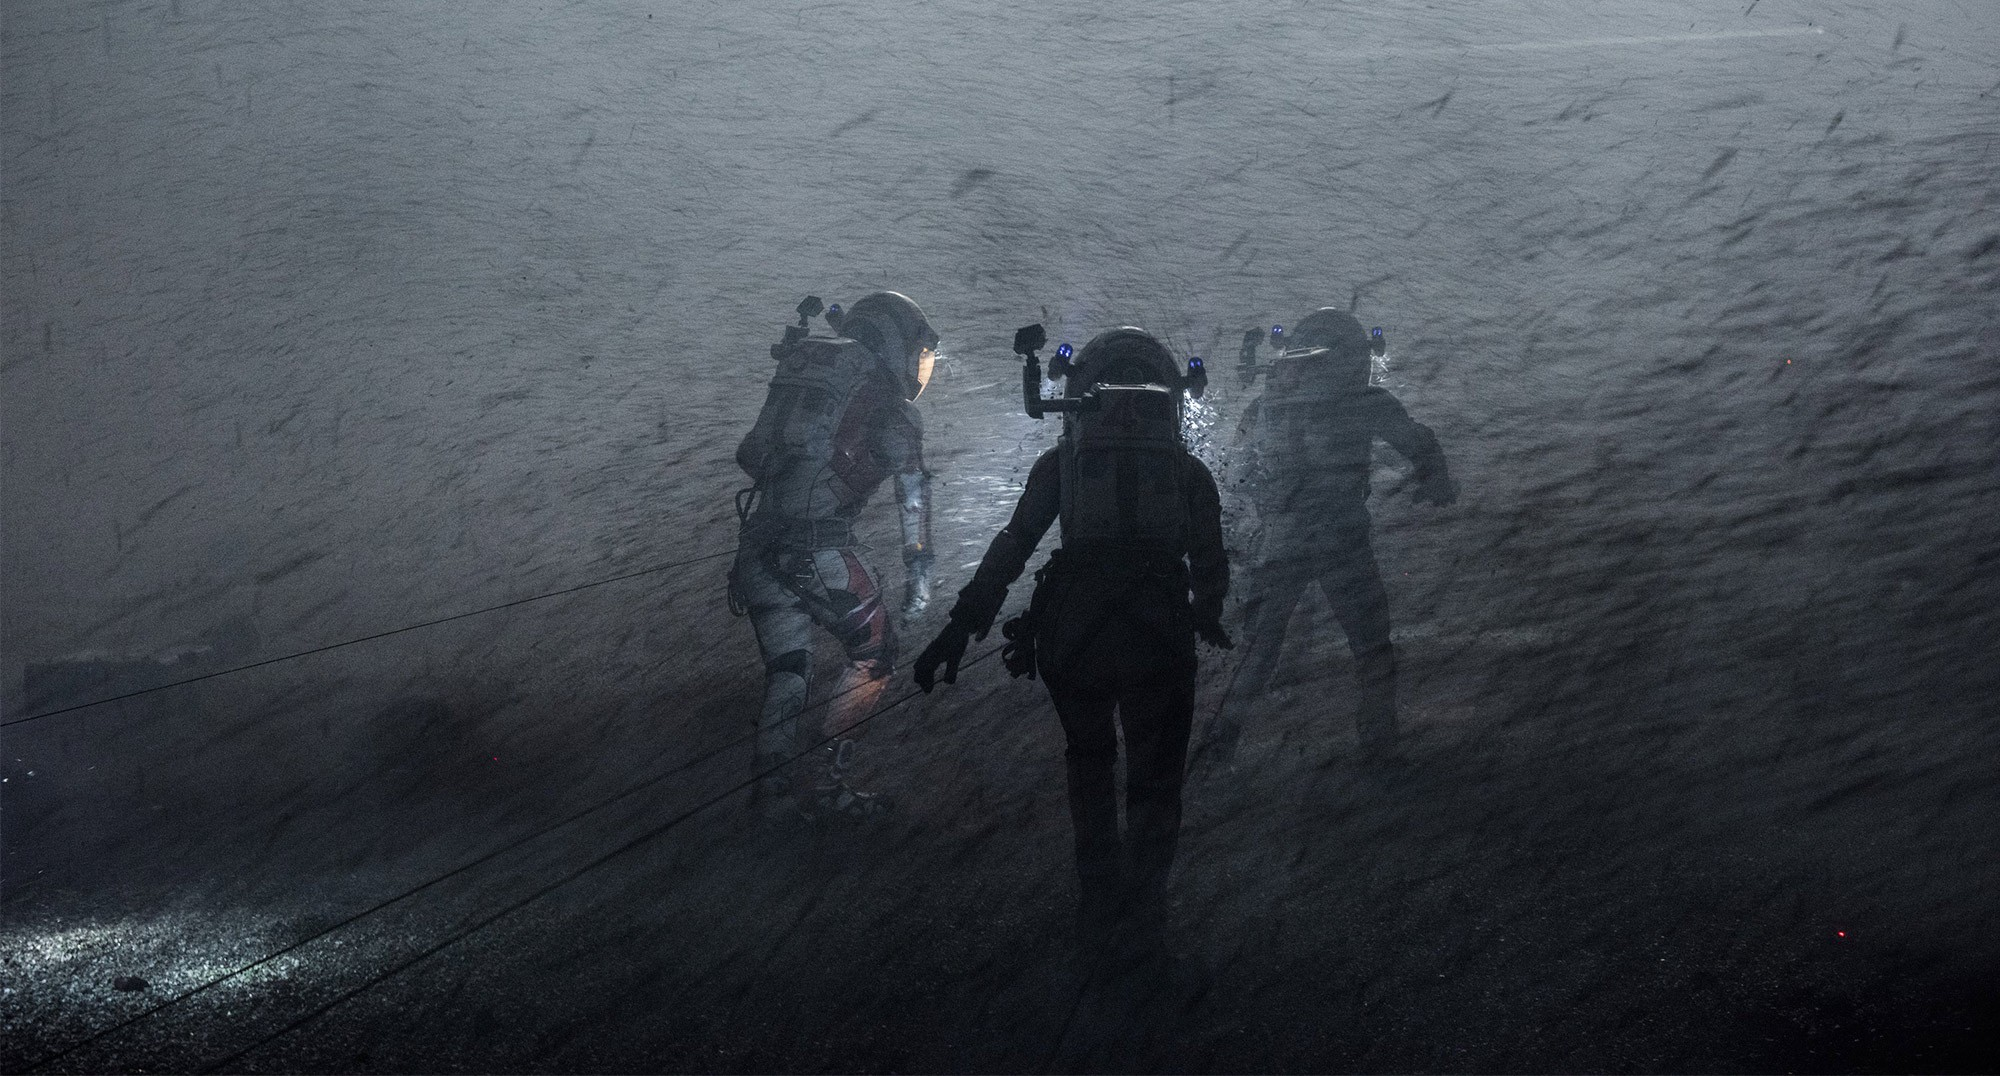 'The Martian' Dust Storm Would Actually Be a Breeze